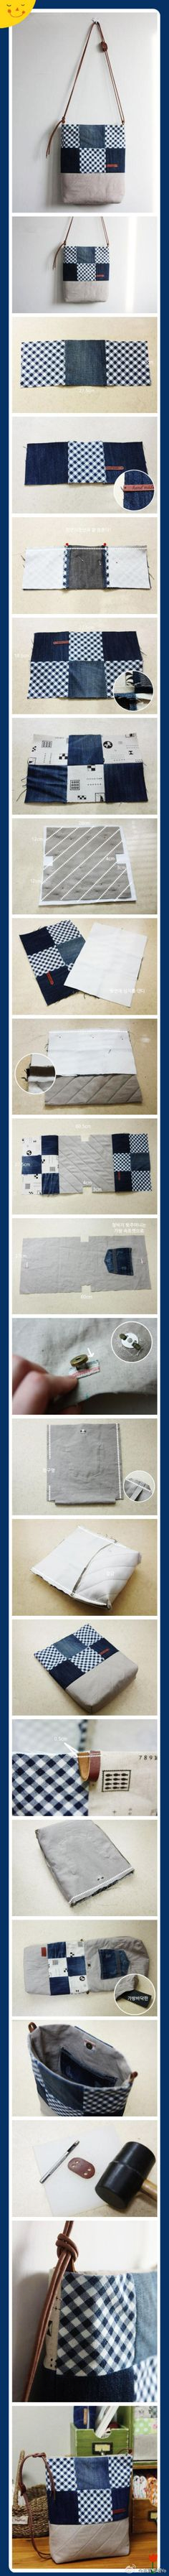 手工DIY DIY斜肩包哦 Love the reuse of the jeans pocket; I would add a zipped pocket to the outside